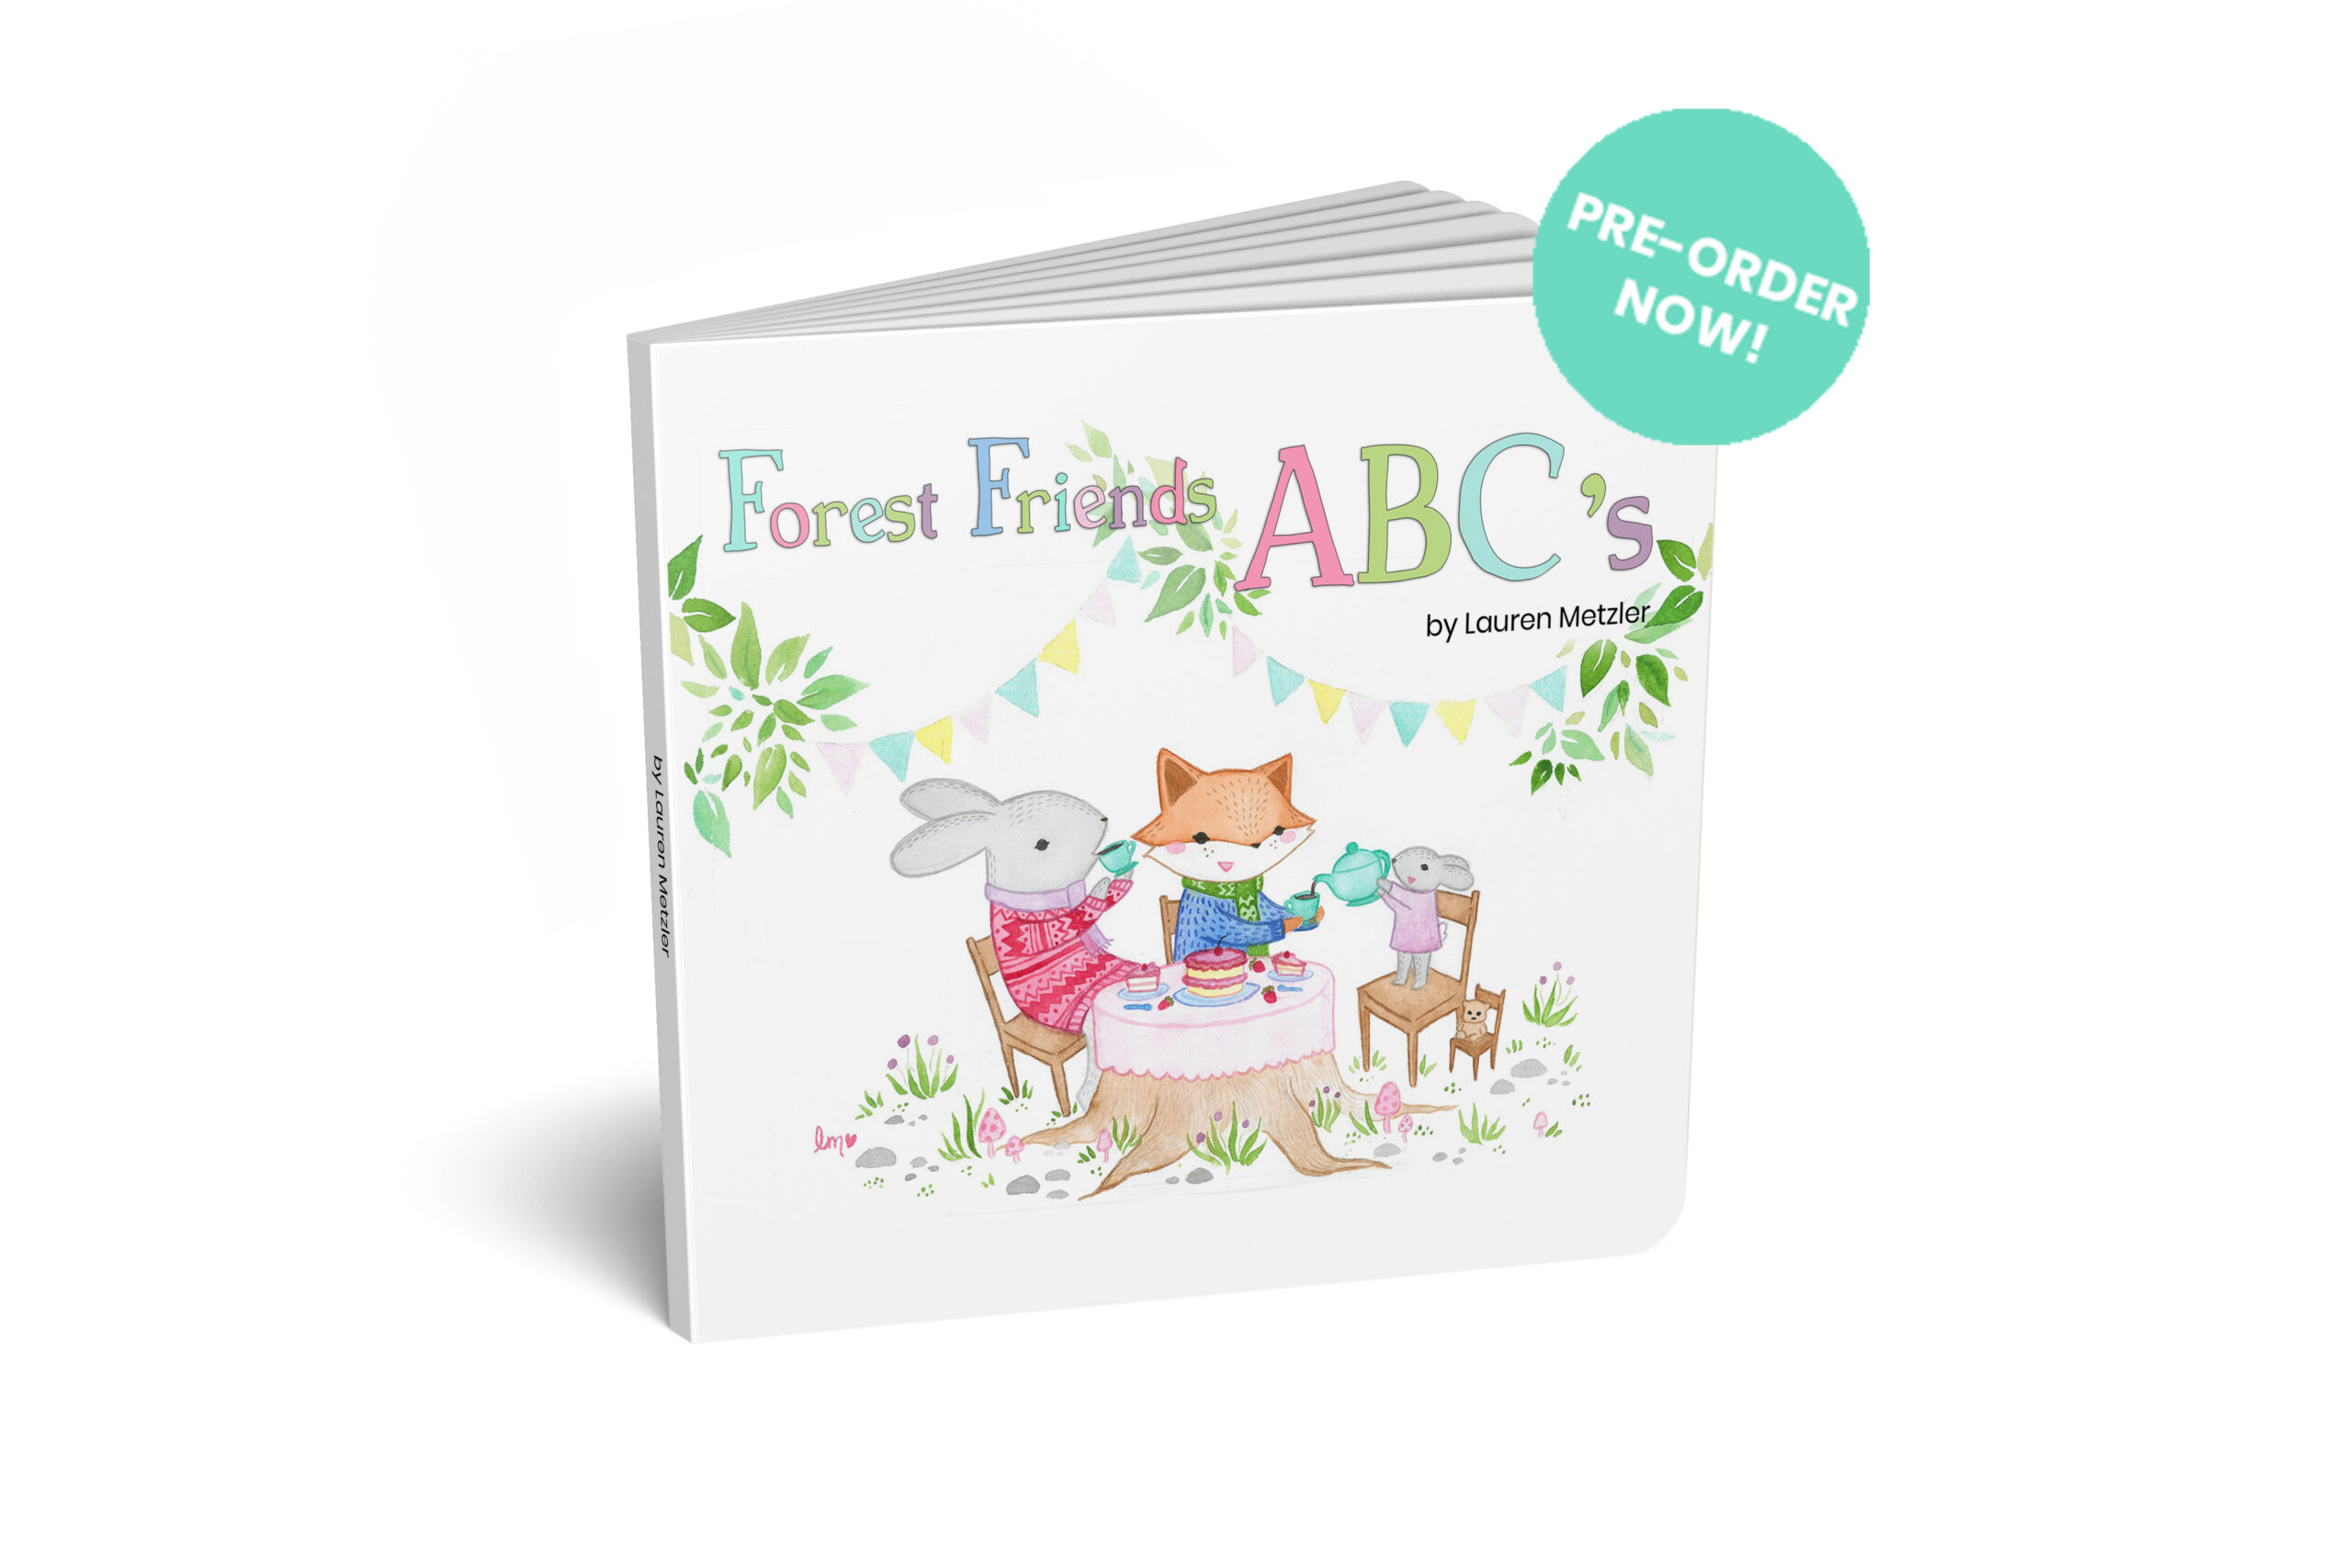 Forest Friends ABC Picture Book by Lauren Metzler find out more at laurenmetzler.com